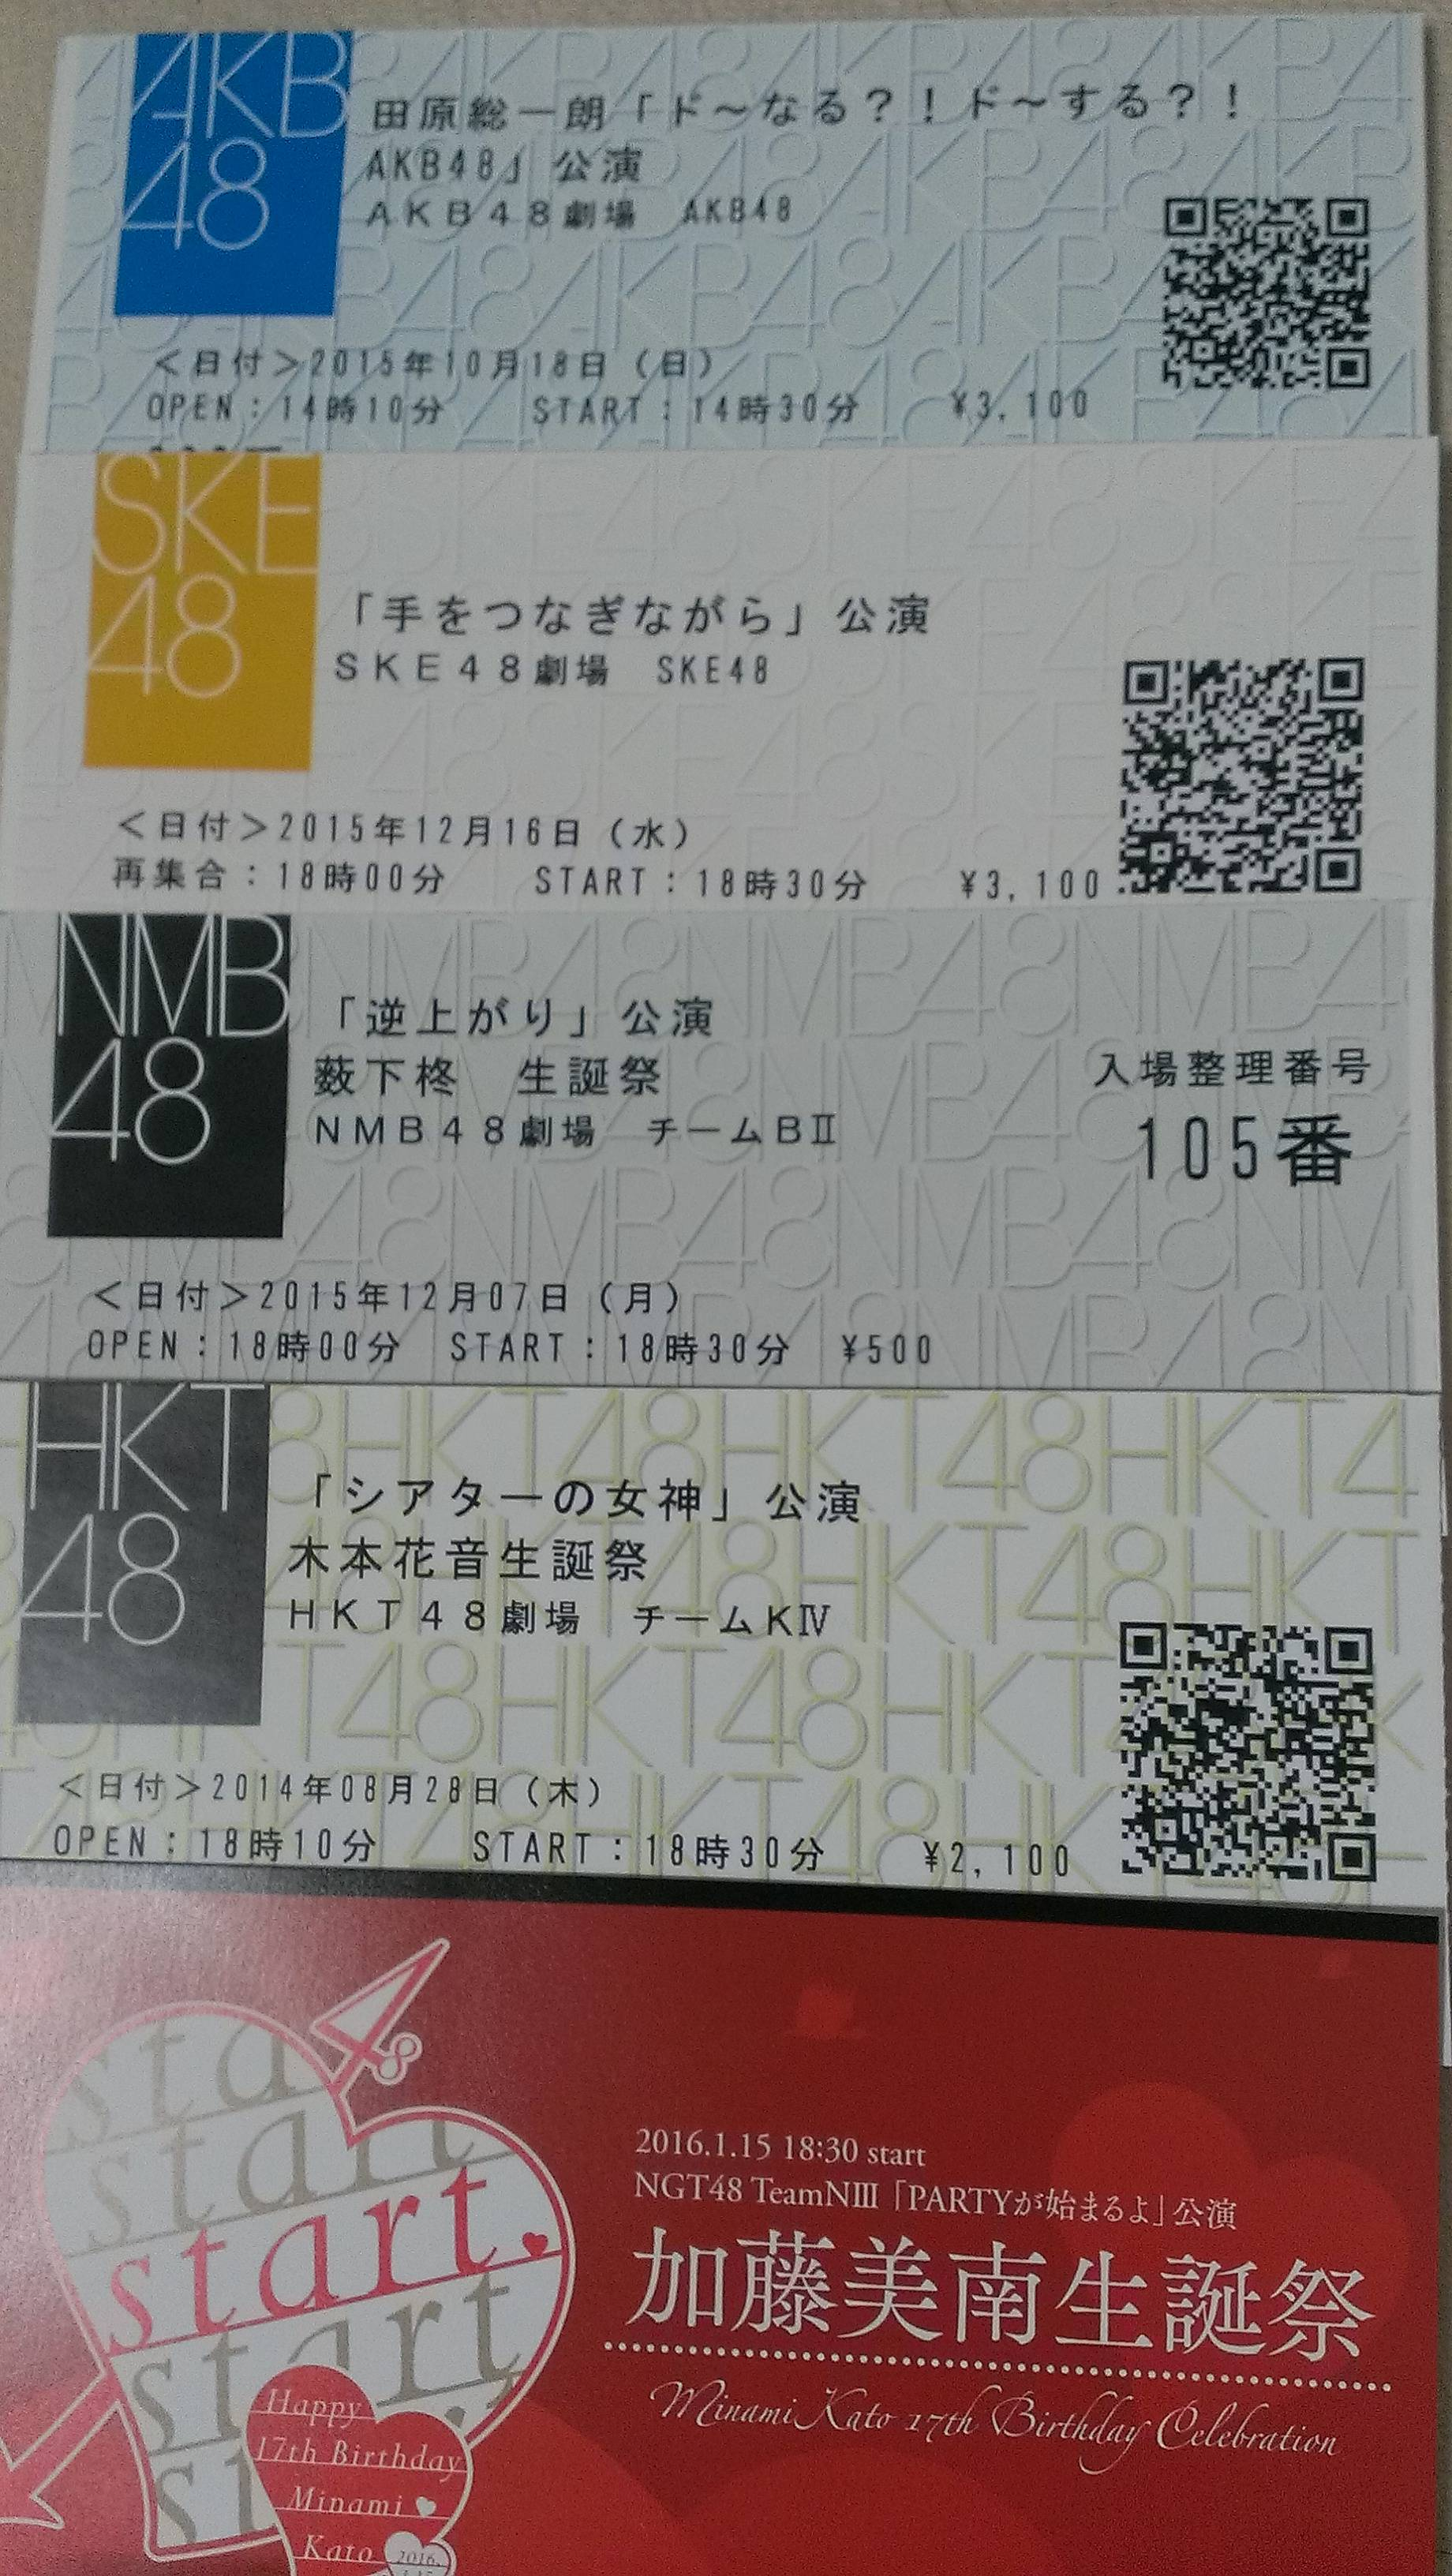 AKB48 tickets